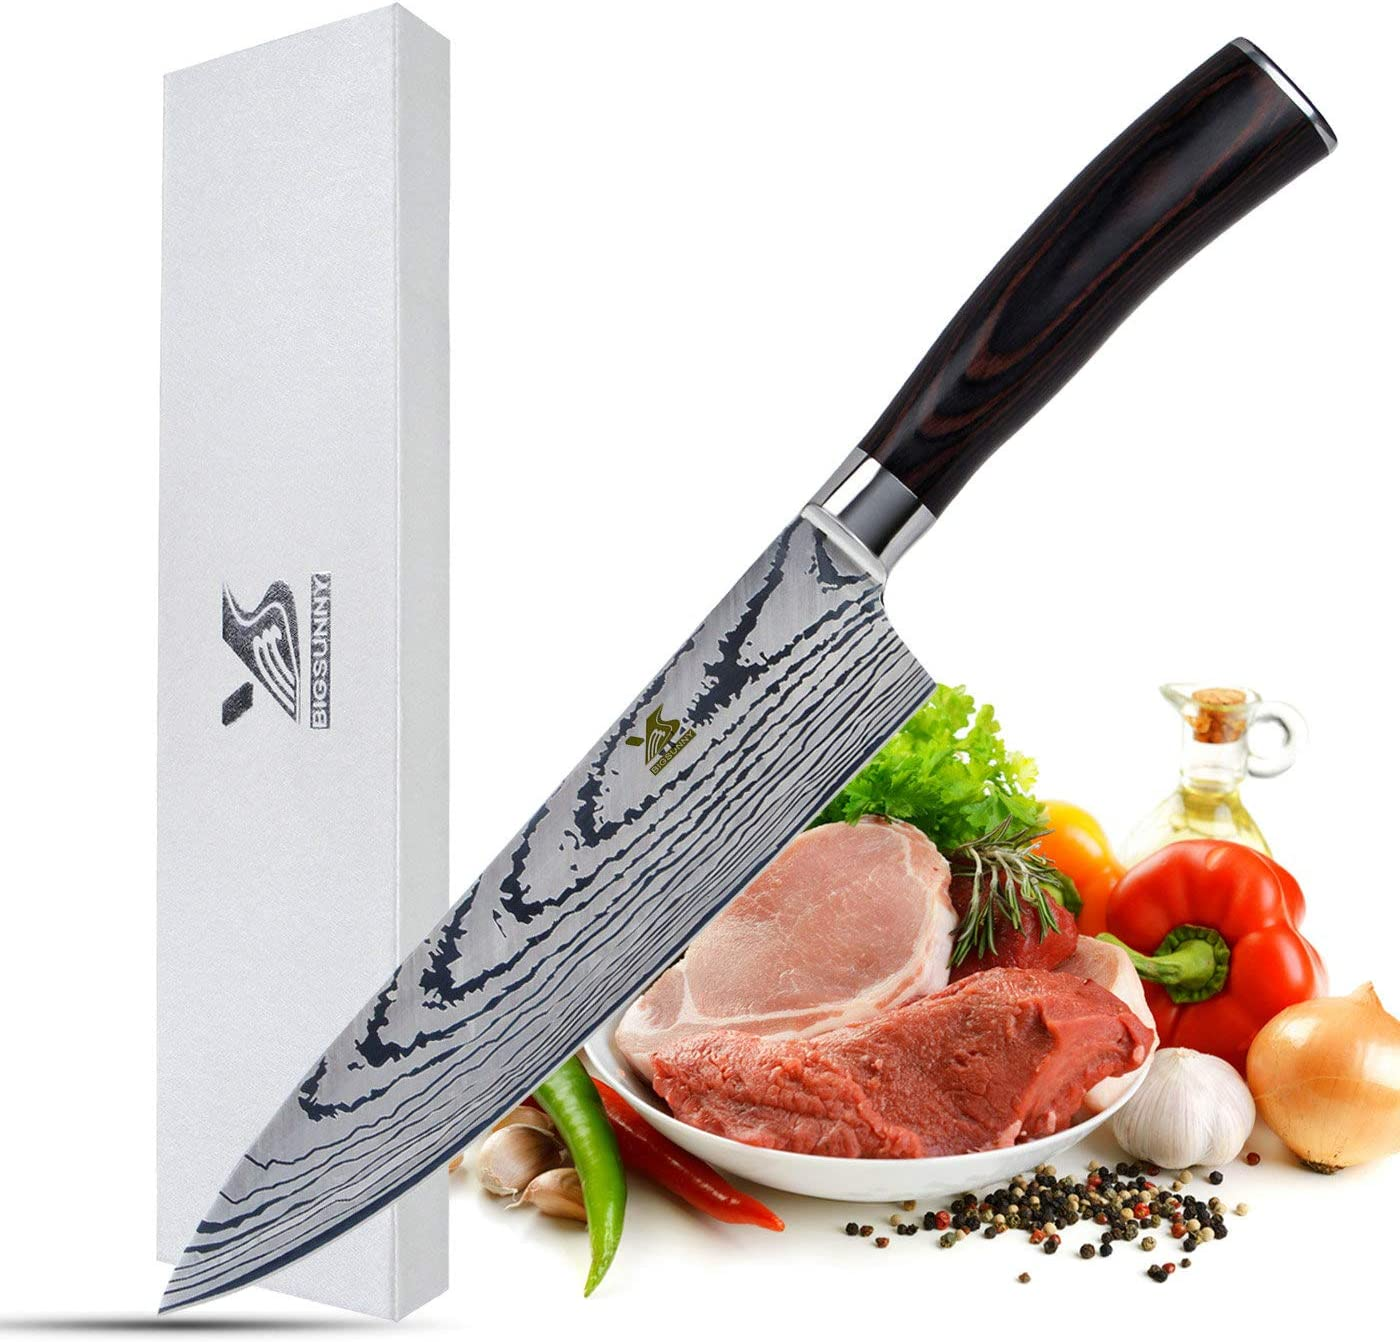 MSY BIGSUNNY Chef Knife 8-inch High Stain Kitchen 35% Super intense SALE OFF Carbon